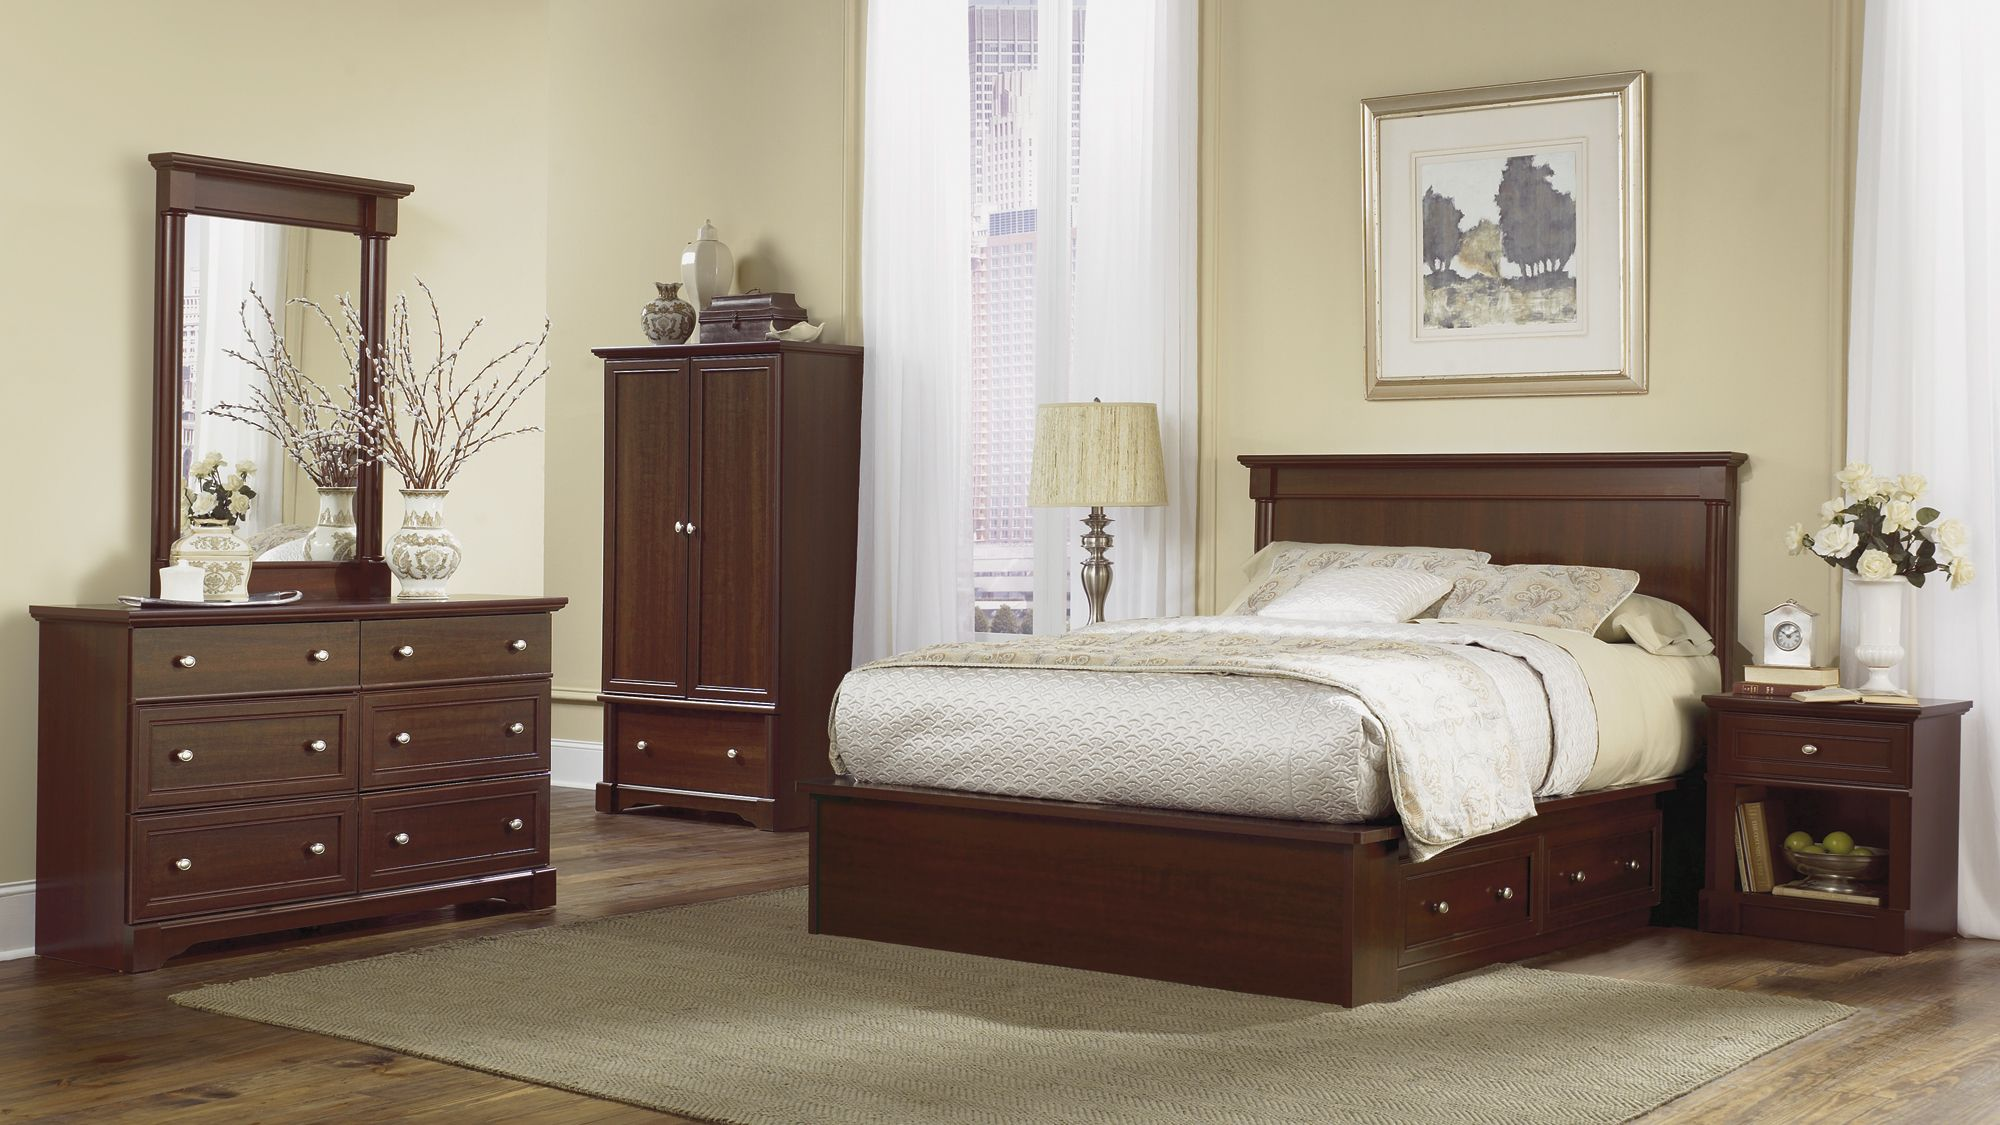 Queen Platform Bed Marjen Of Chicago Chicago Discount - Marjen furniture